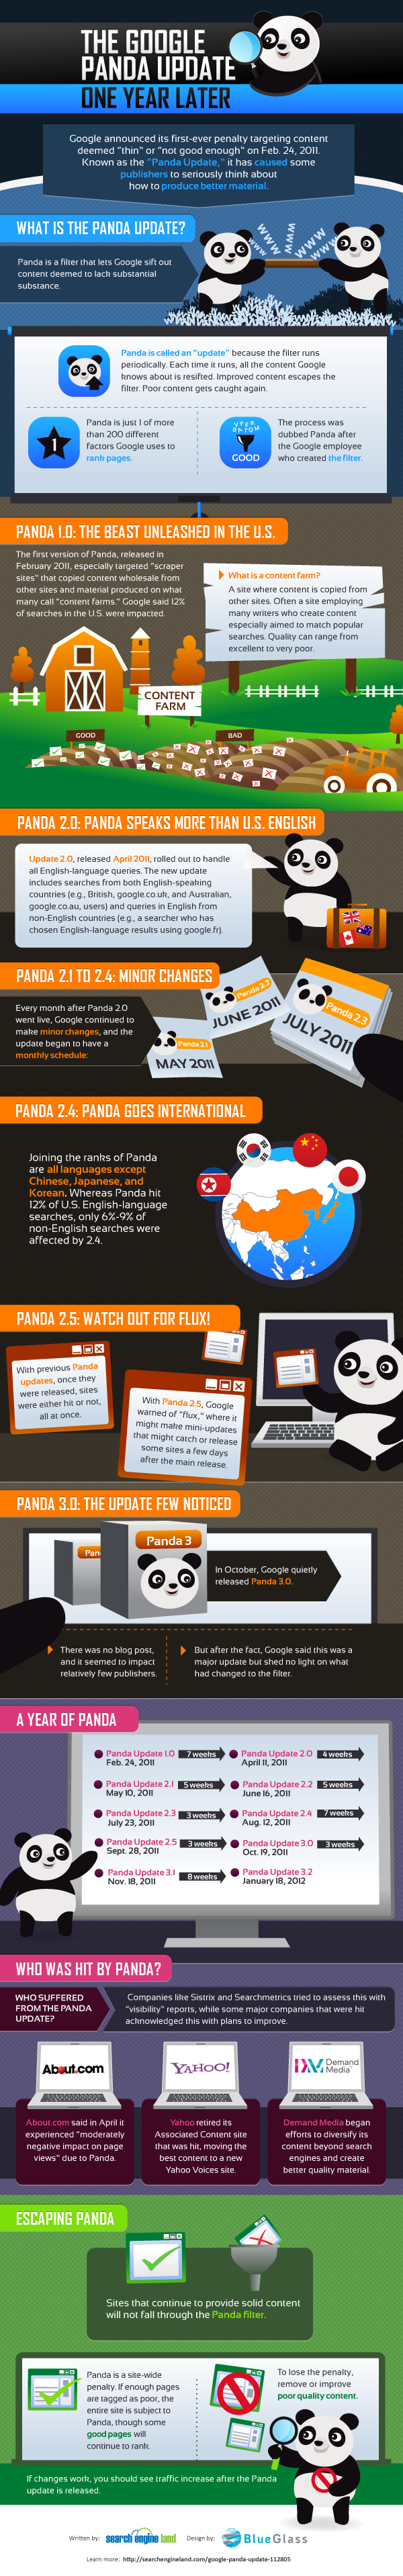 The Google Panda update one year later #infographic